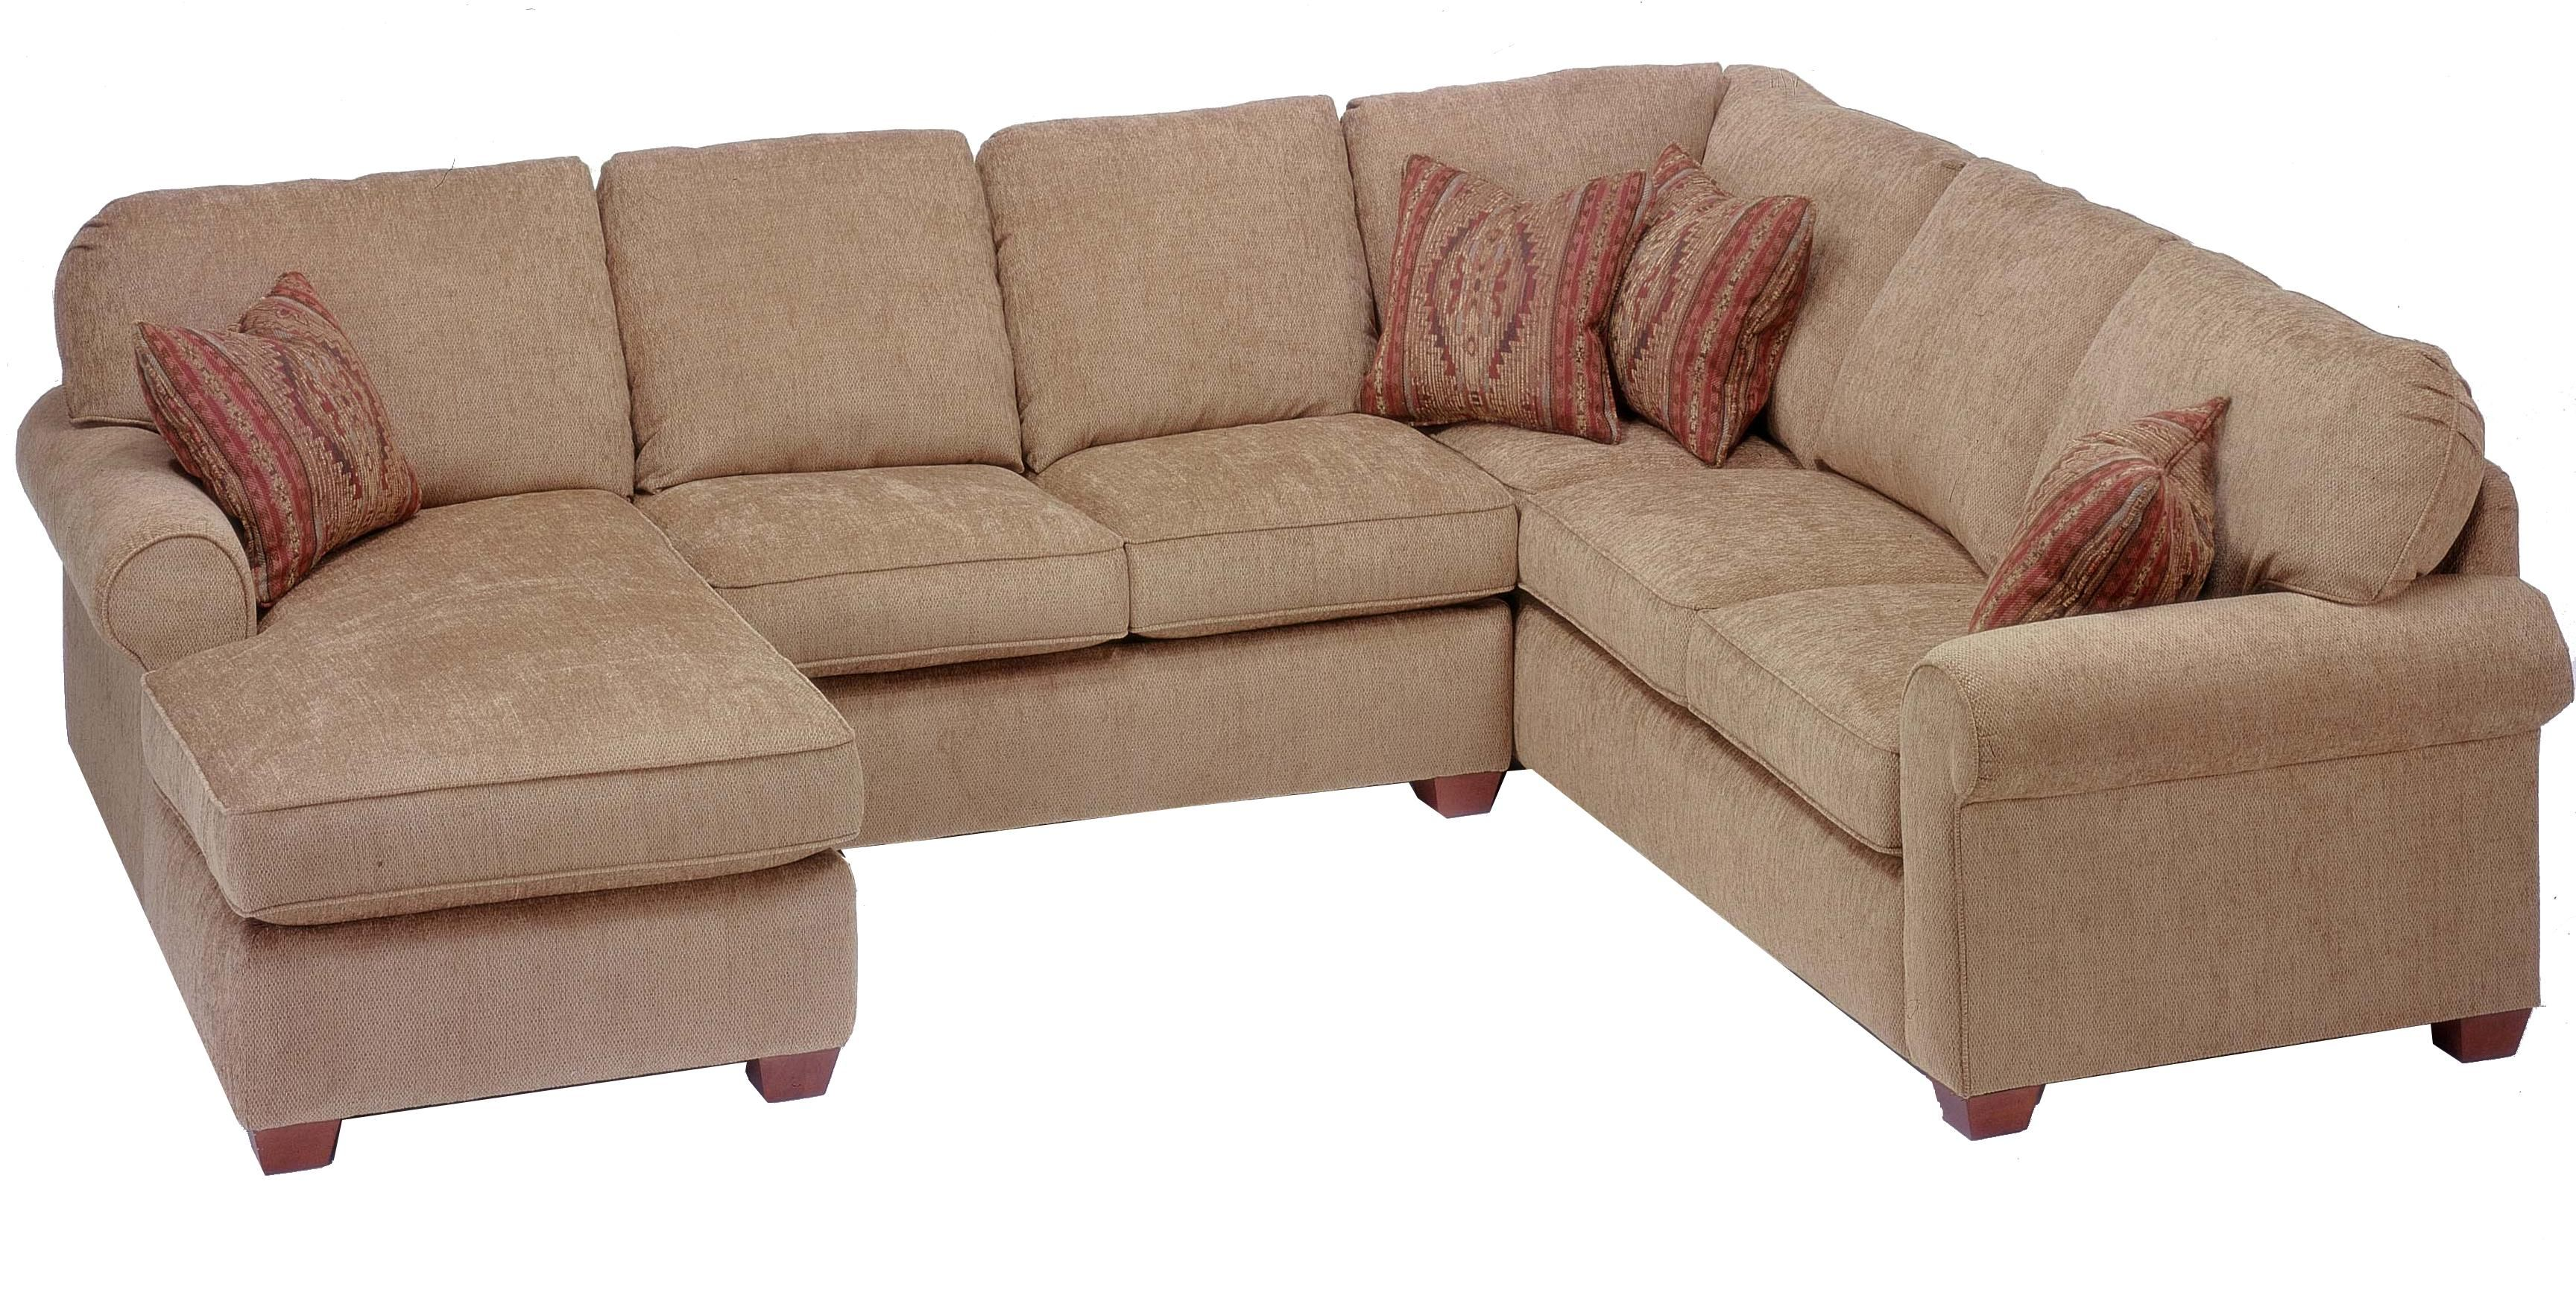 Best Thornton 3 Piece Sectional With Chaise By Flexsteel 400 x 300